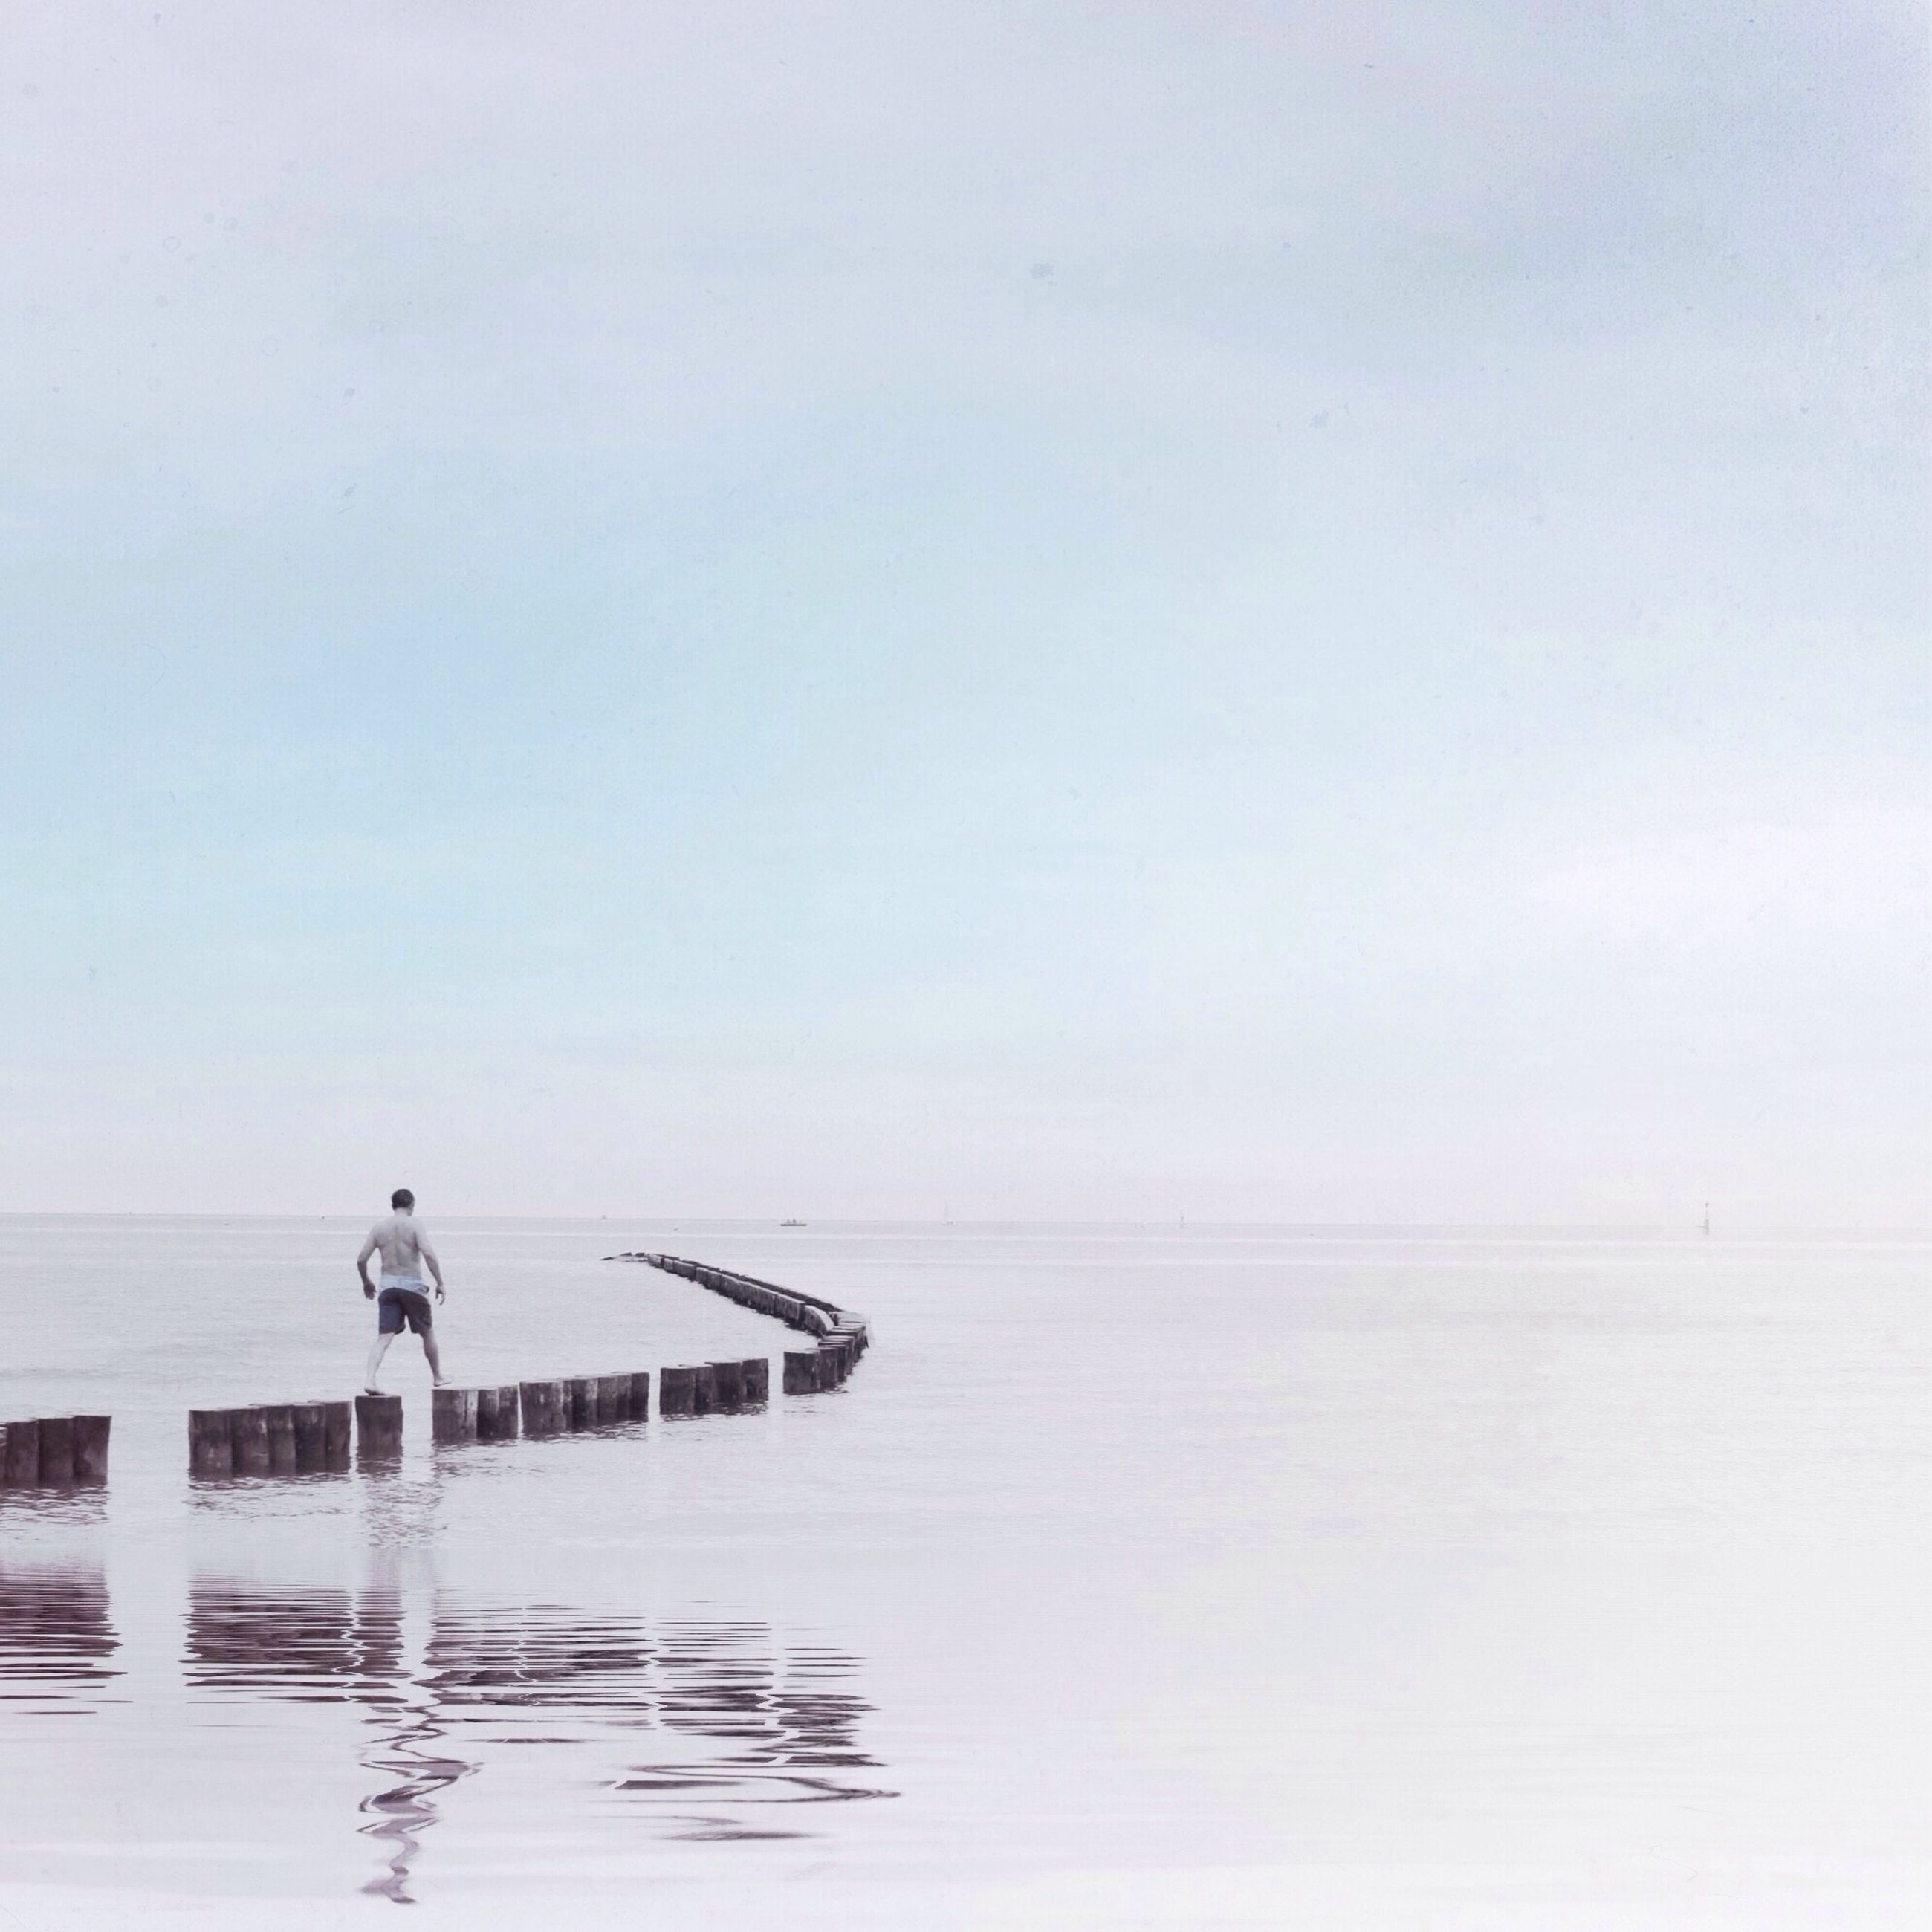 water, sea, lifestyles, copy space, leisure activity, clear sky, horizon over water, tranquil scene, tranquility, full length, rear view, standing, scenics, men, pier, nature, beauty in nature, waterfront